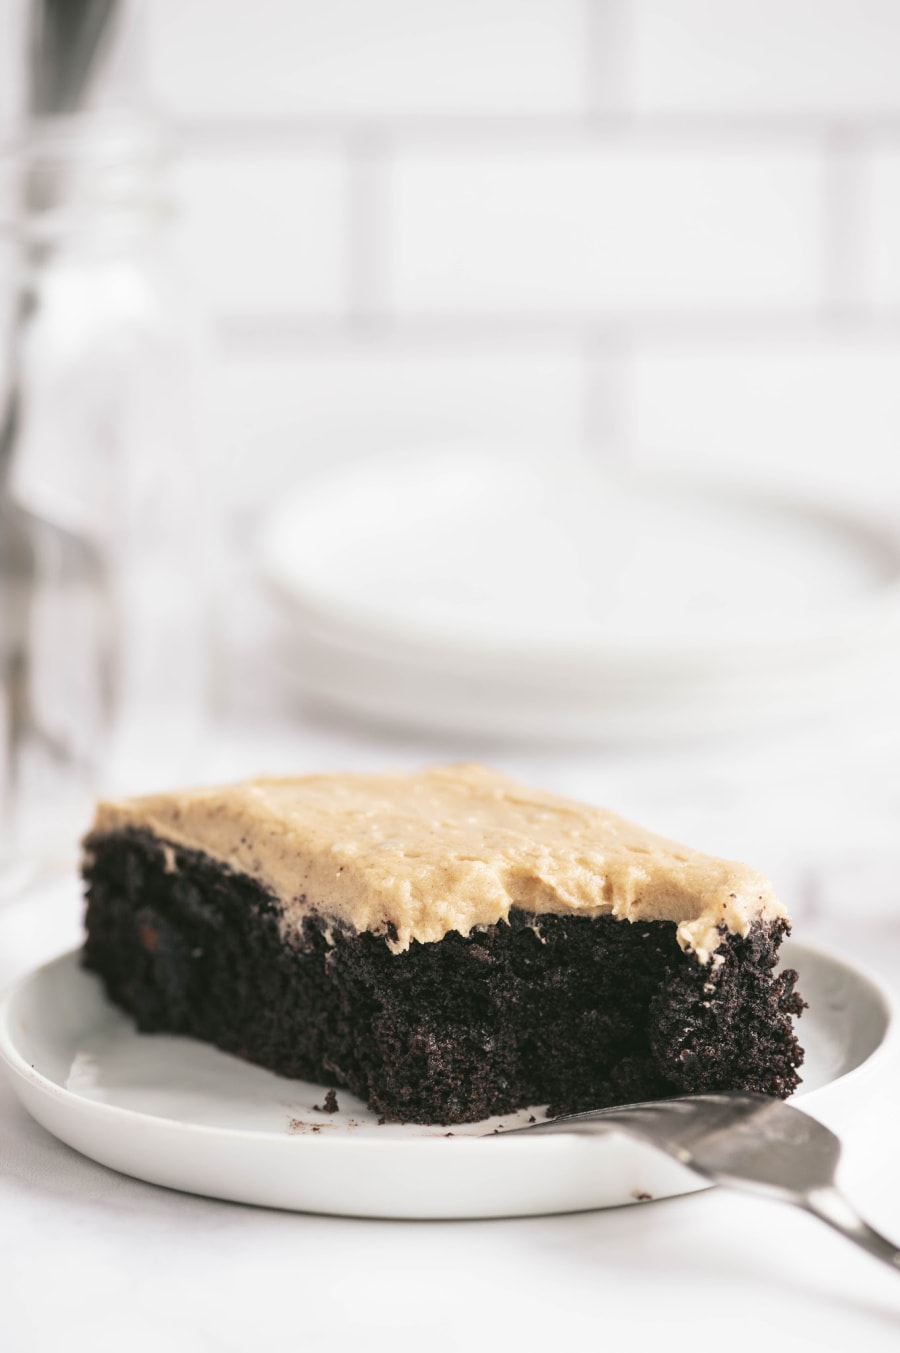 More than 100+ amazing recipes for the Jewish holiday of Passover, including a bunch of go-to, favorite Pesach recipes to make for Seder dinner, including appetizers, side dishes, and desserts, with plenty that work as great leftovers for the holiday week to follow. | glitterinc.com | @glitterinc // Gluten Free Chocolate Cake with Peanut Butter Frosting